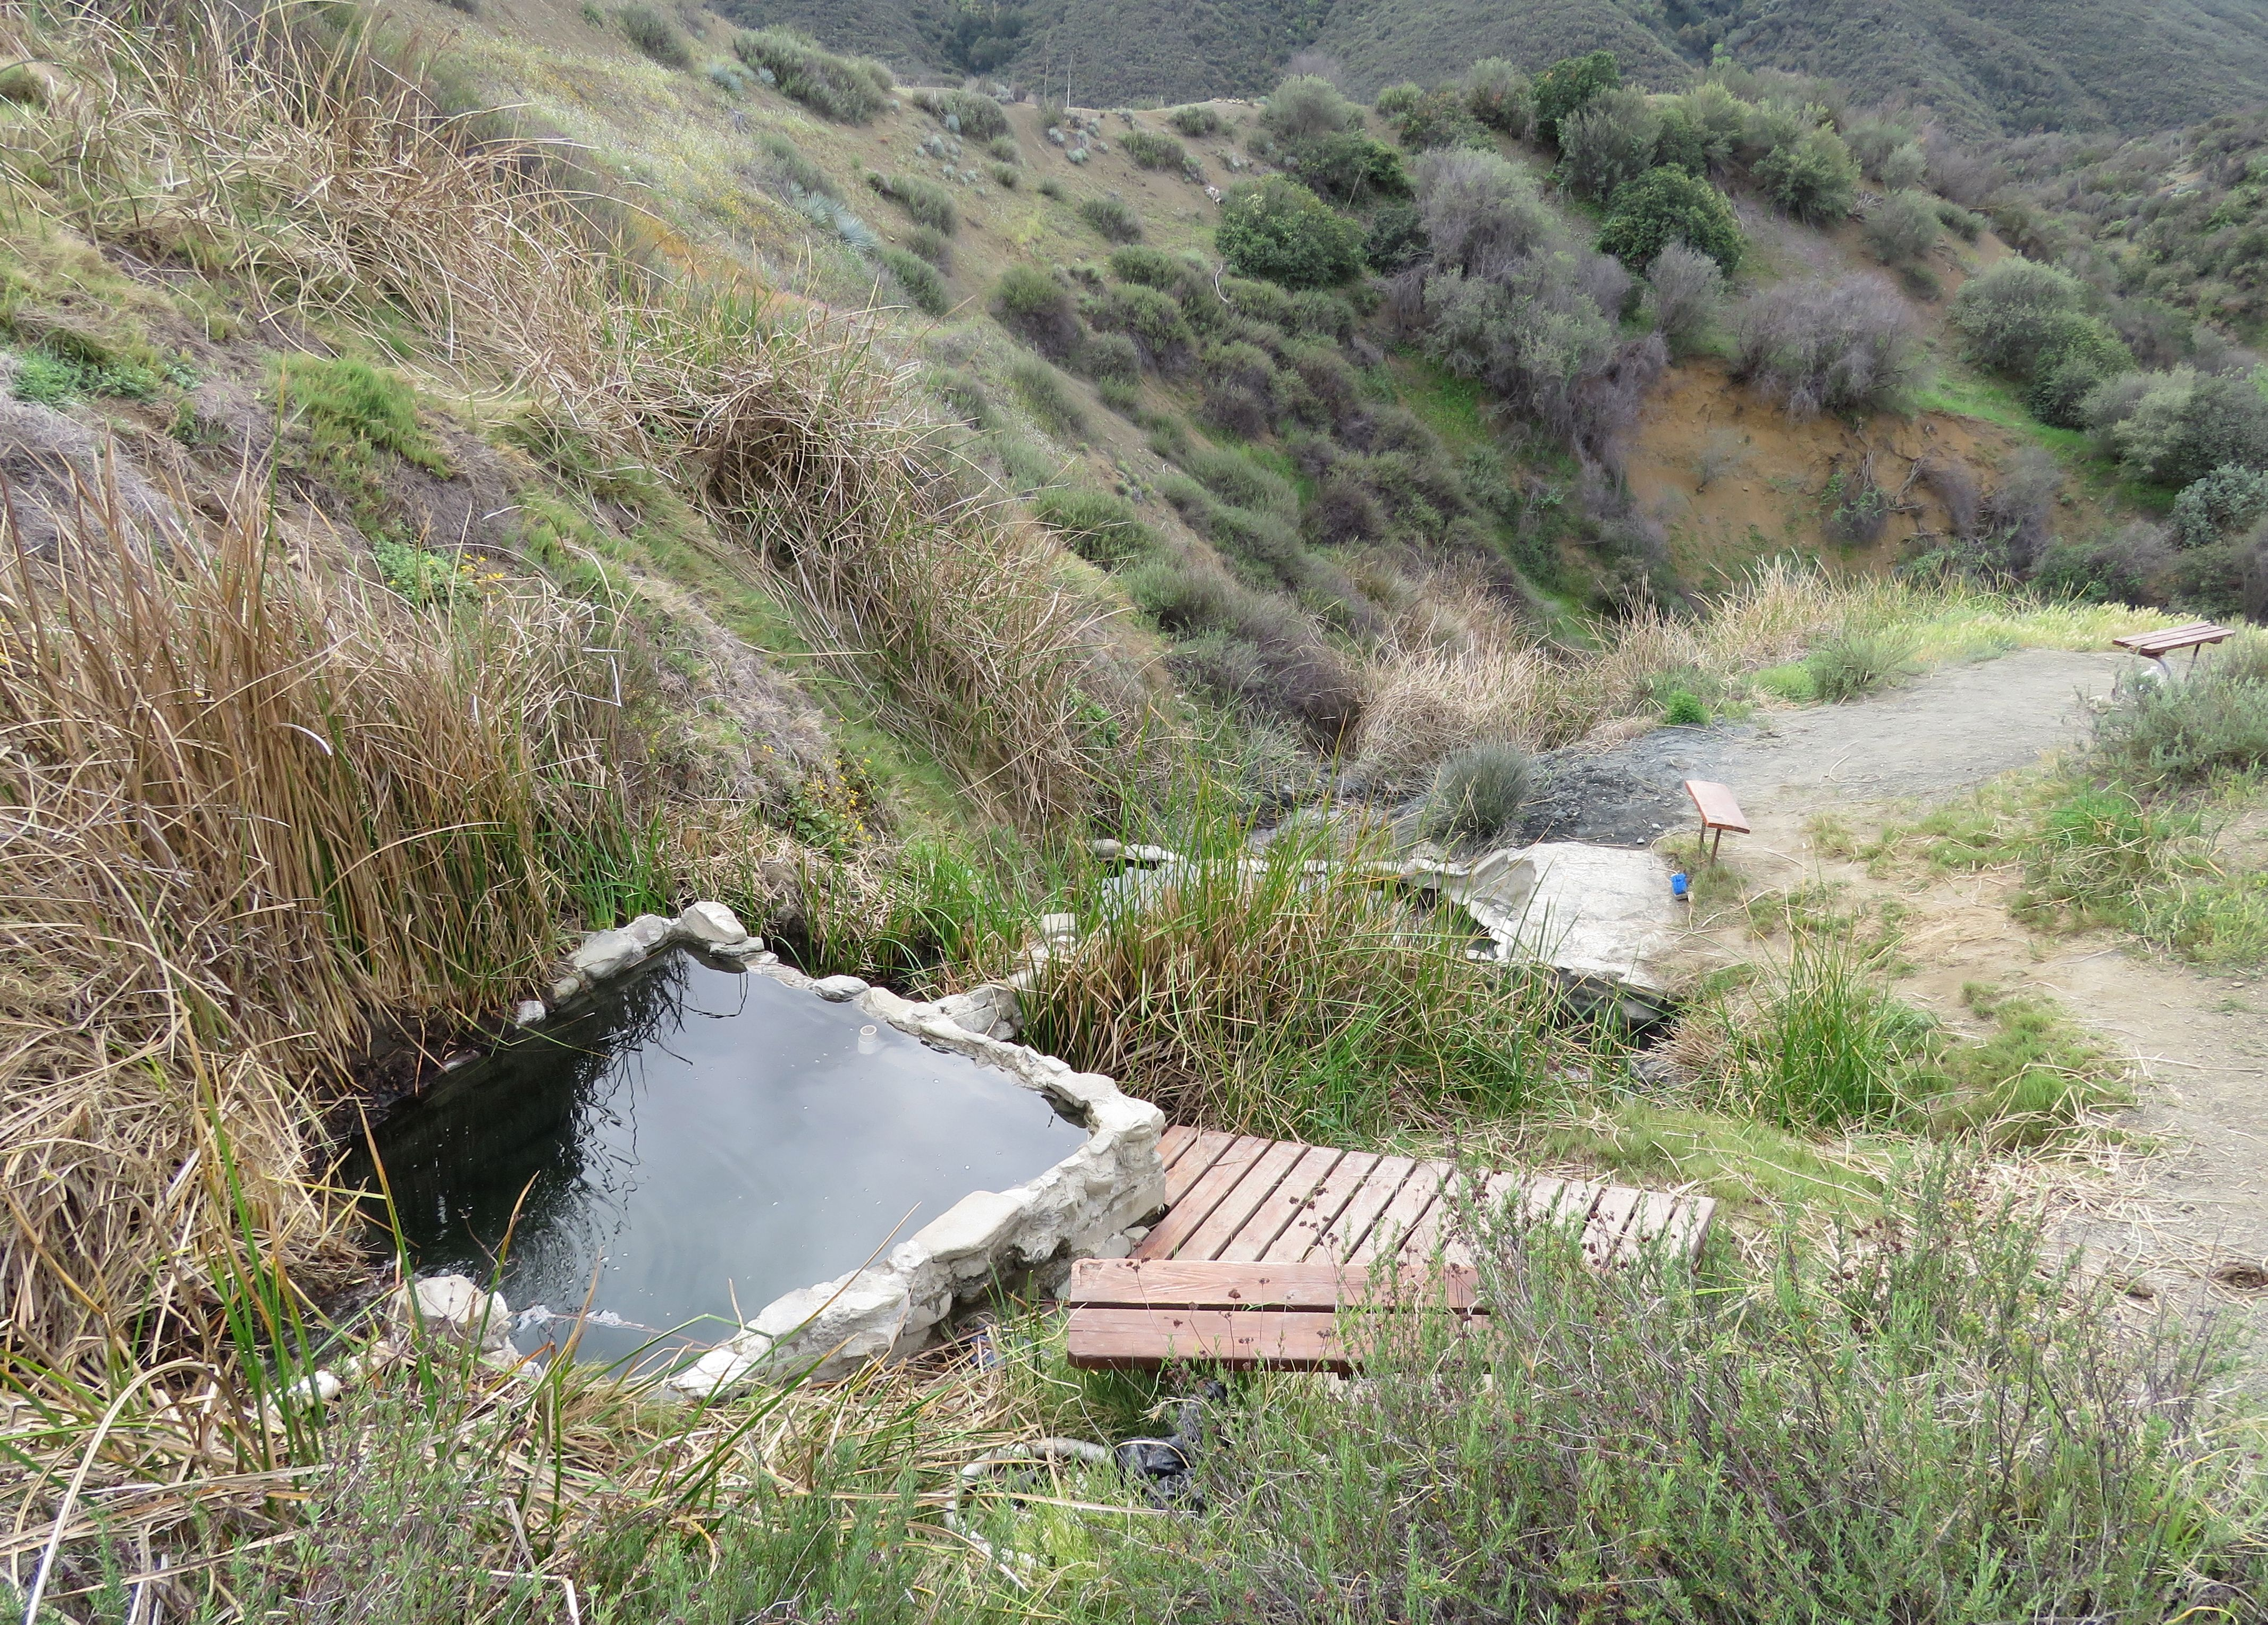 mono hot springs women Things to do in mono hot springs, california: see tripadvisor's 27,514 traveller reviews and photos of mono hot springs attractions.